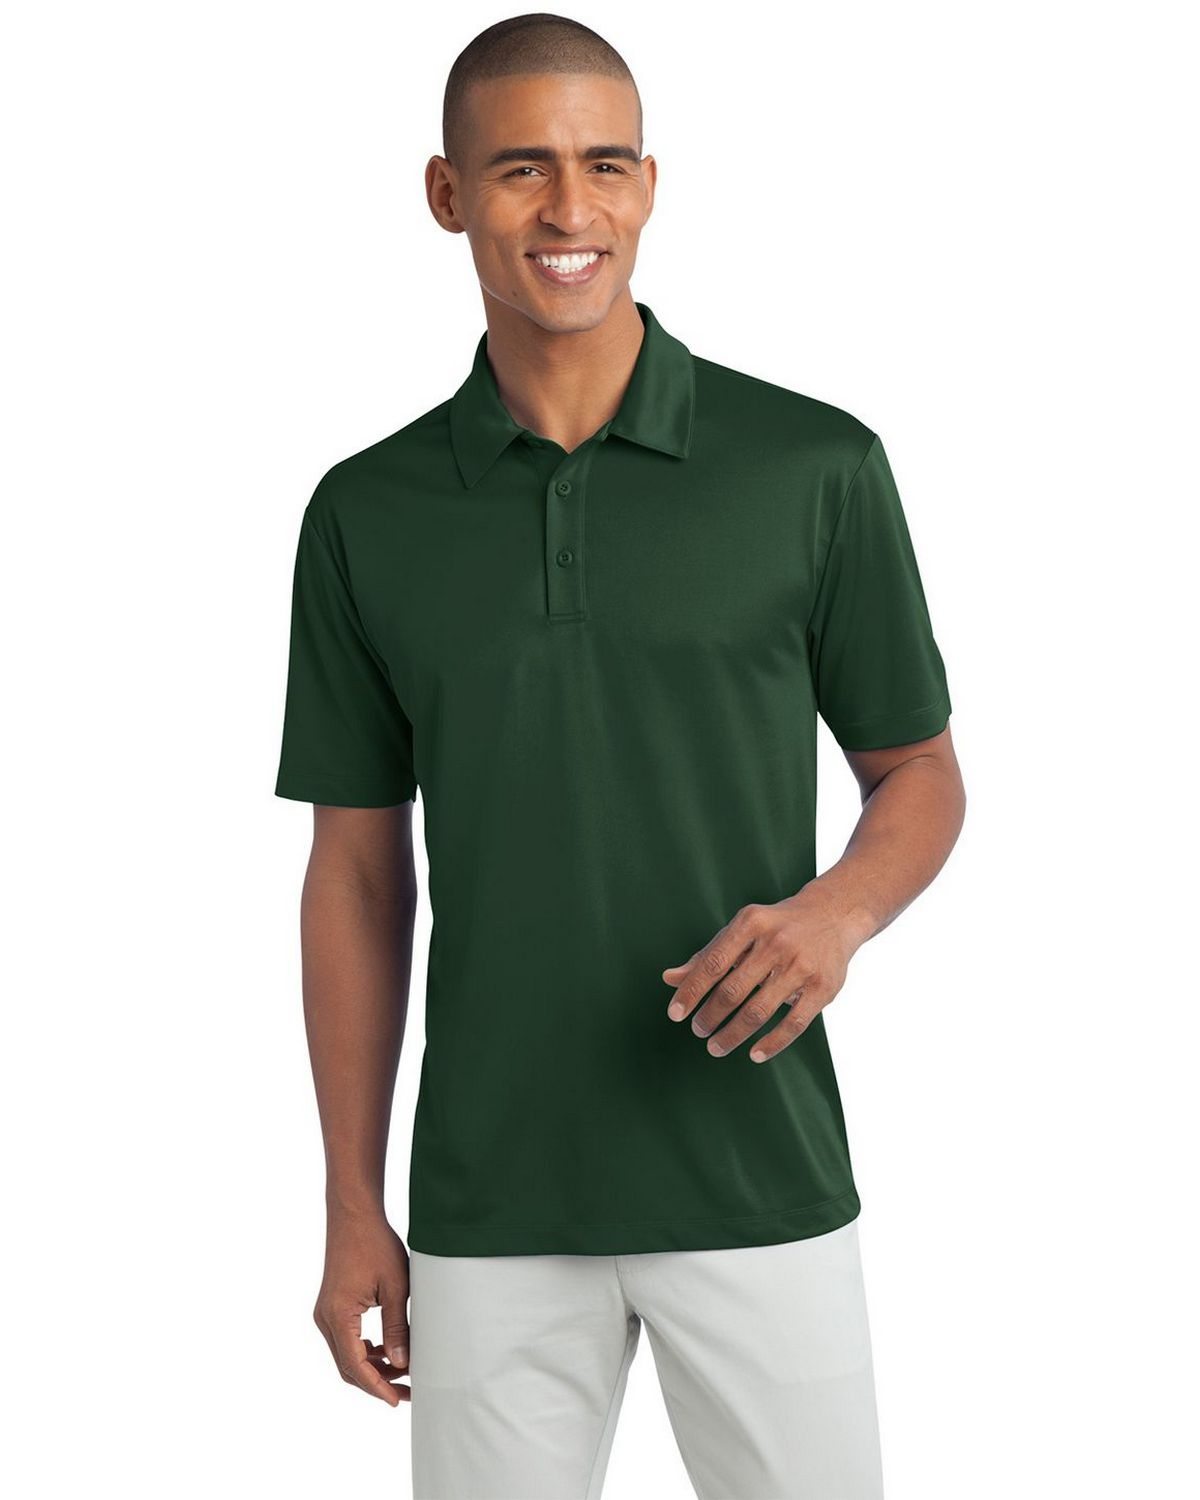 Port Authority K540 Men's Silk Touch Performance Polo - Dark Green - XS #silk